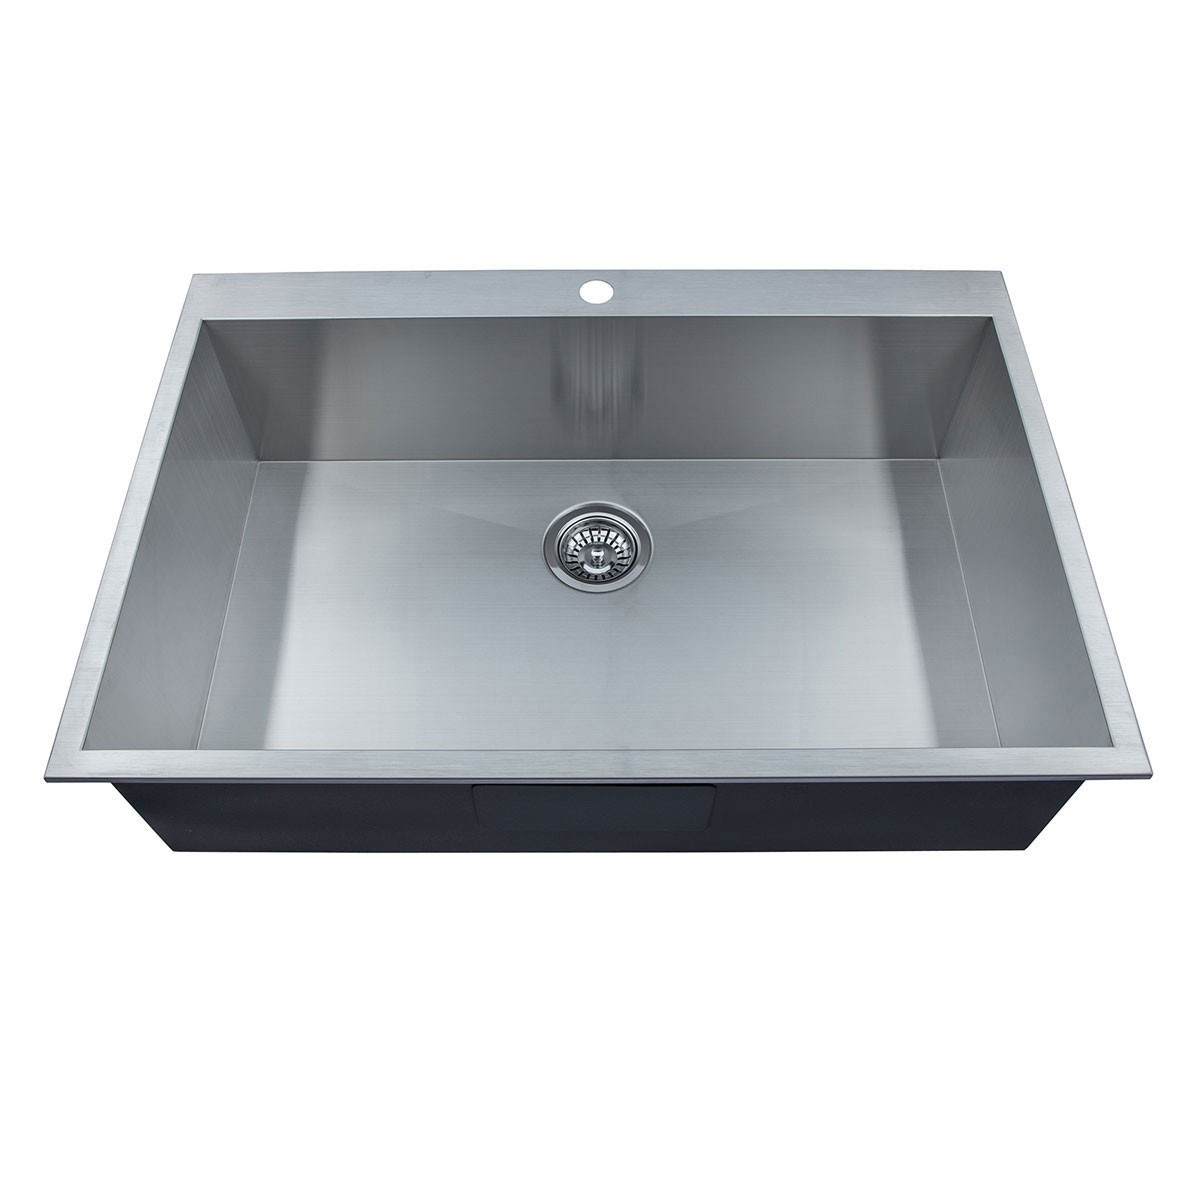 Stainless Steel Handmade Kitchen Sink (AS3322-R0)